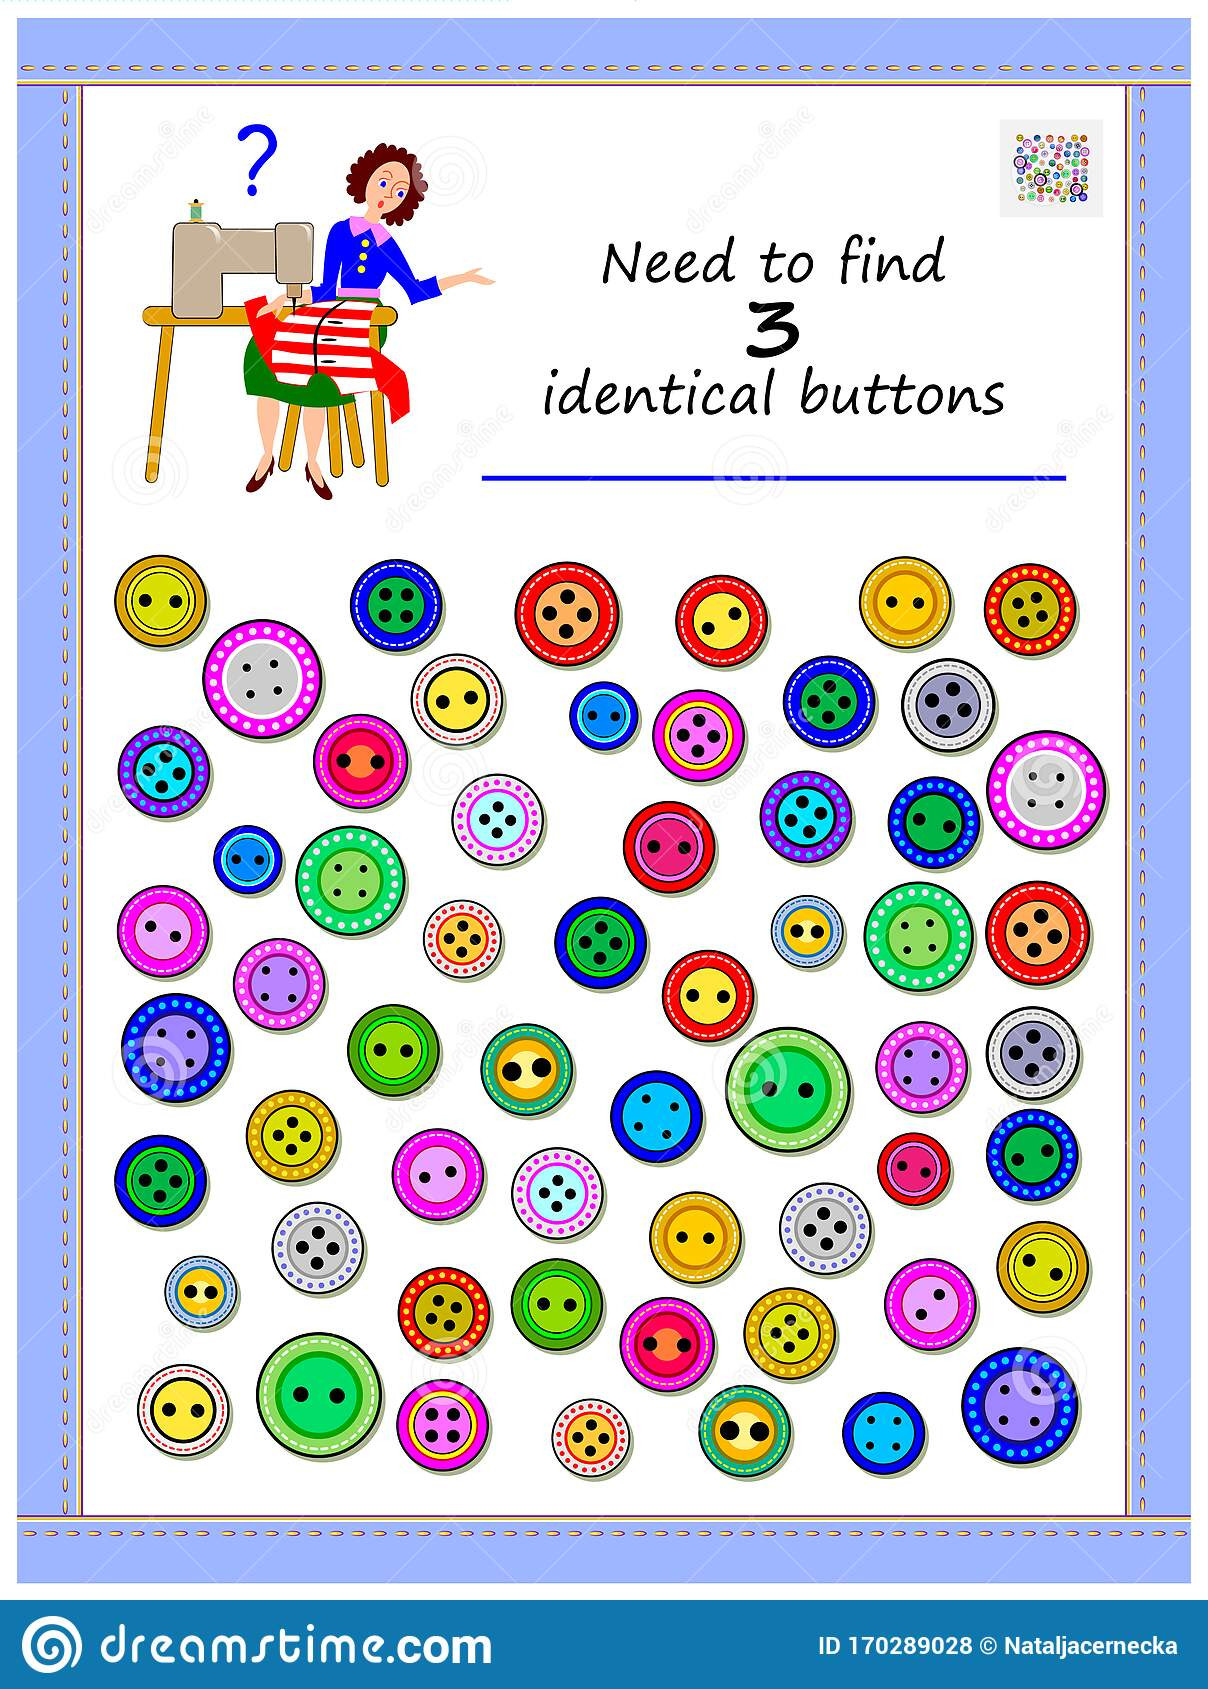 Printable Rebus Brain Teasers Logic Puzzle Game for Children and Adults Need to Find